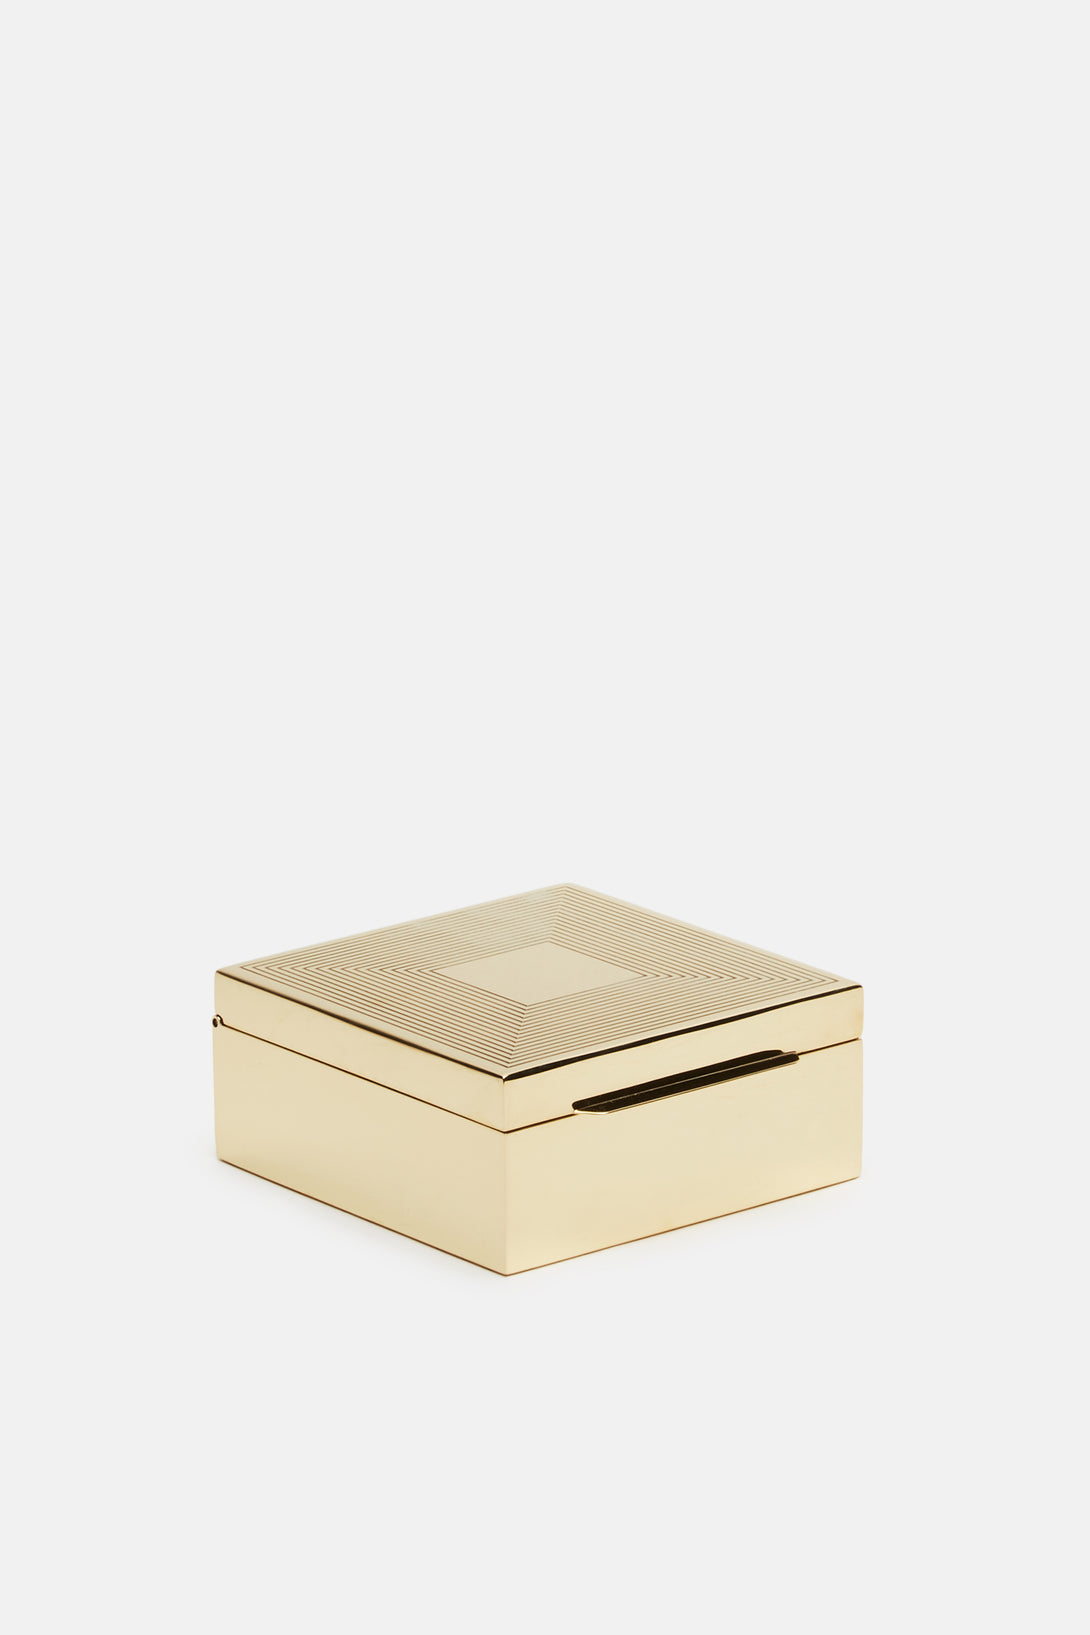 Polished Brass Box - Square Lines